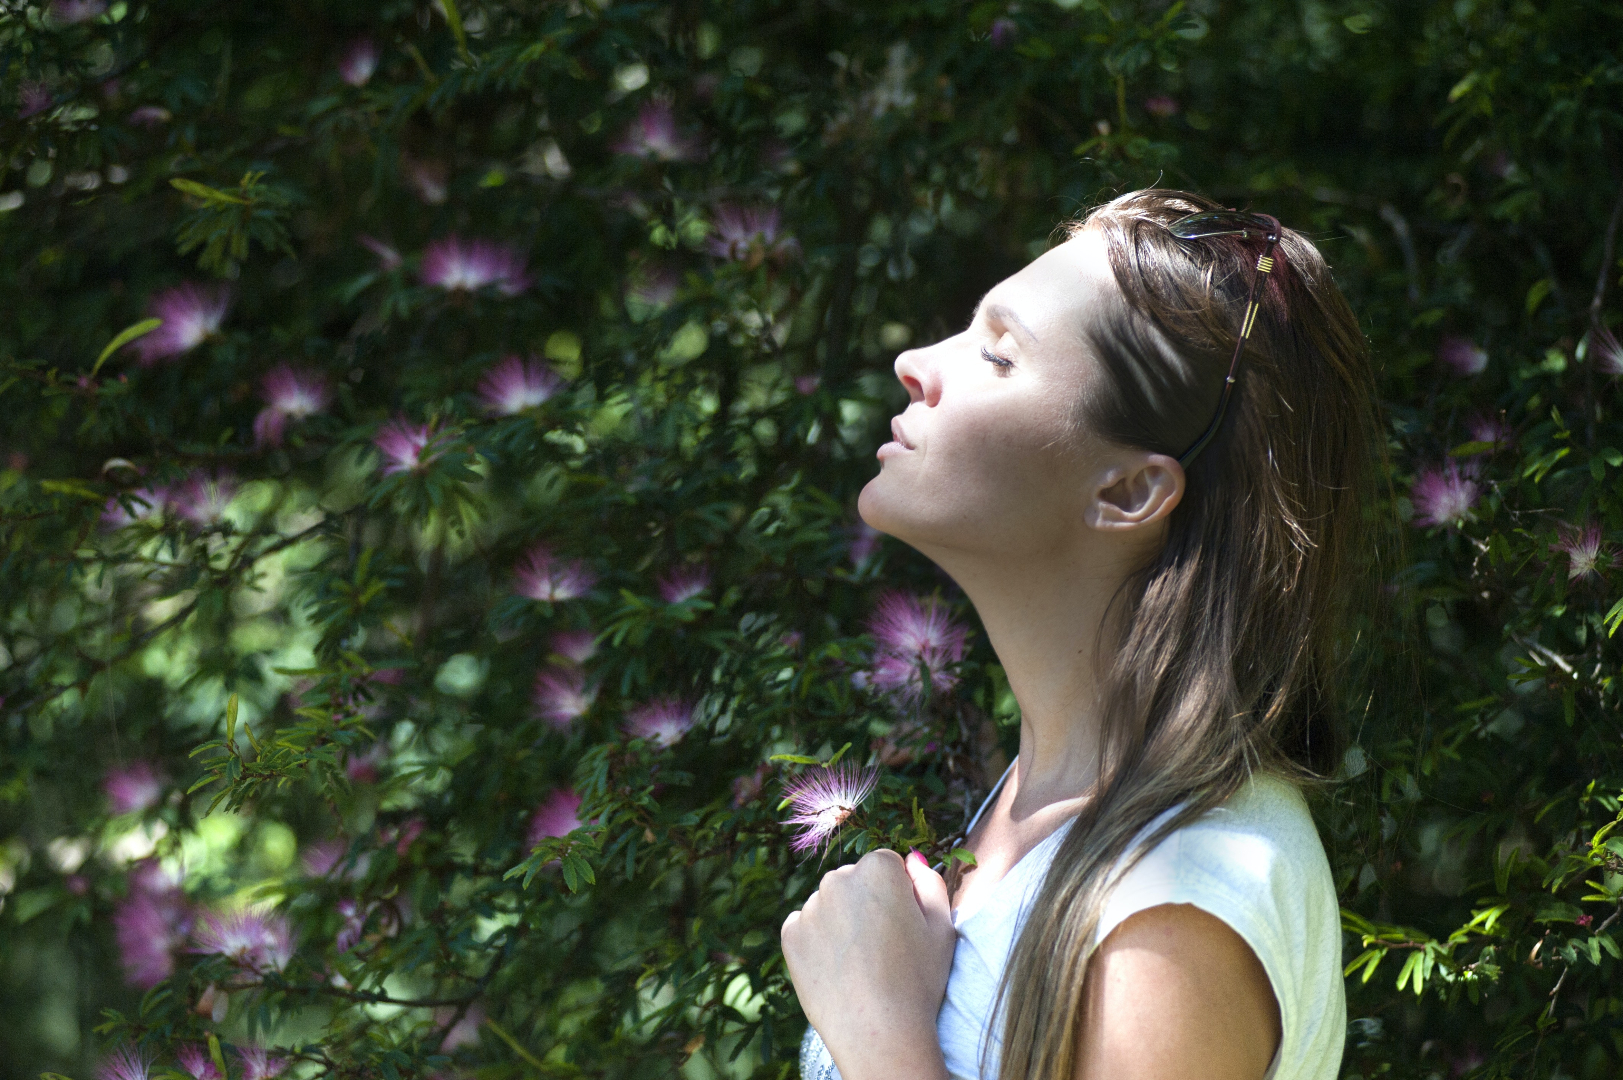 woman standing with eyes closed in front of tree with purple flowers